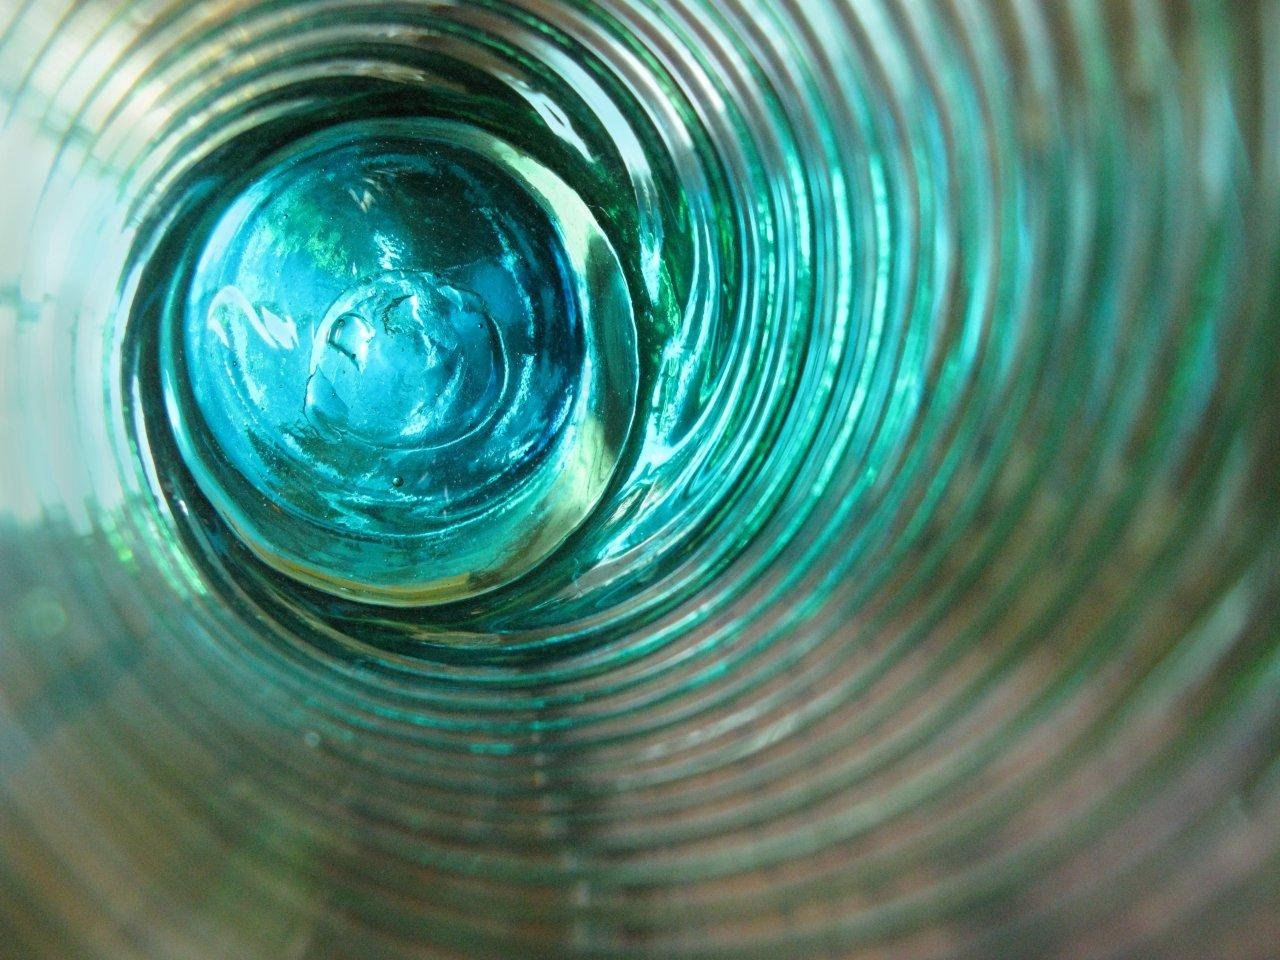 blue glass image by Robyn Beattie